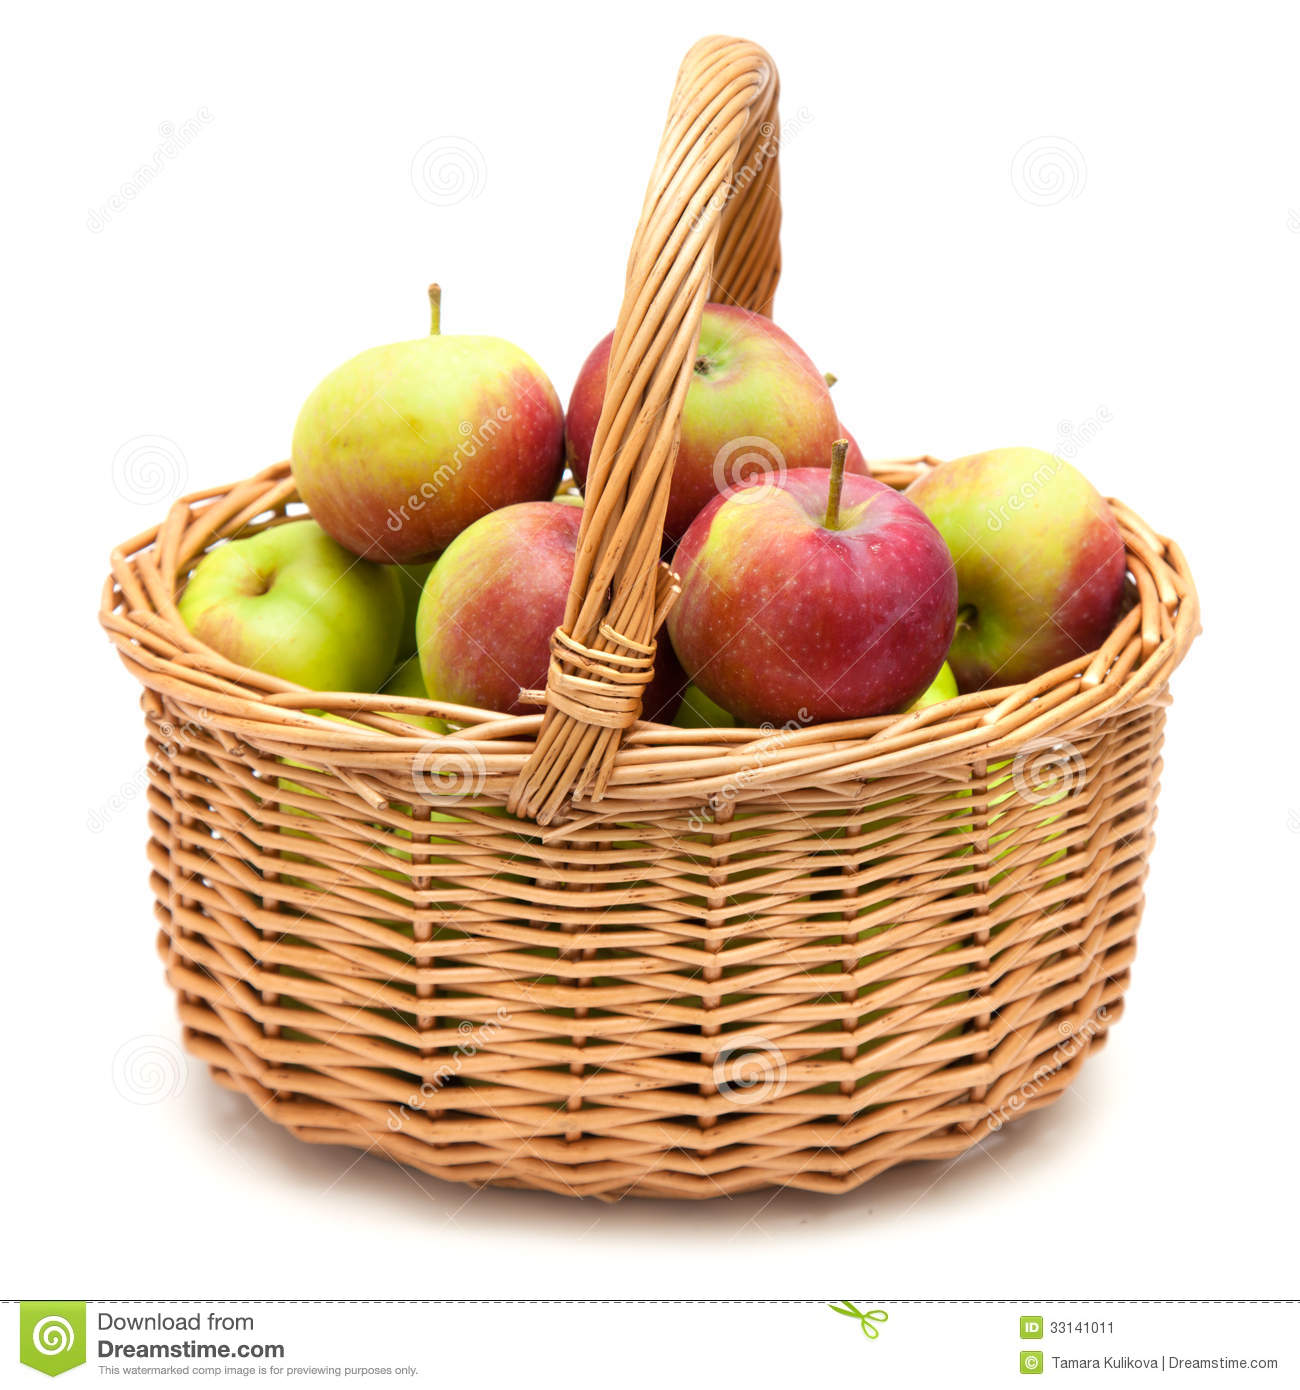 Fruit Basket Images Stock Photos amp Vectors  Shutterstock